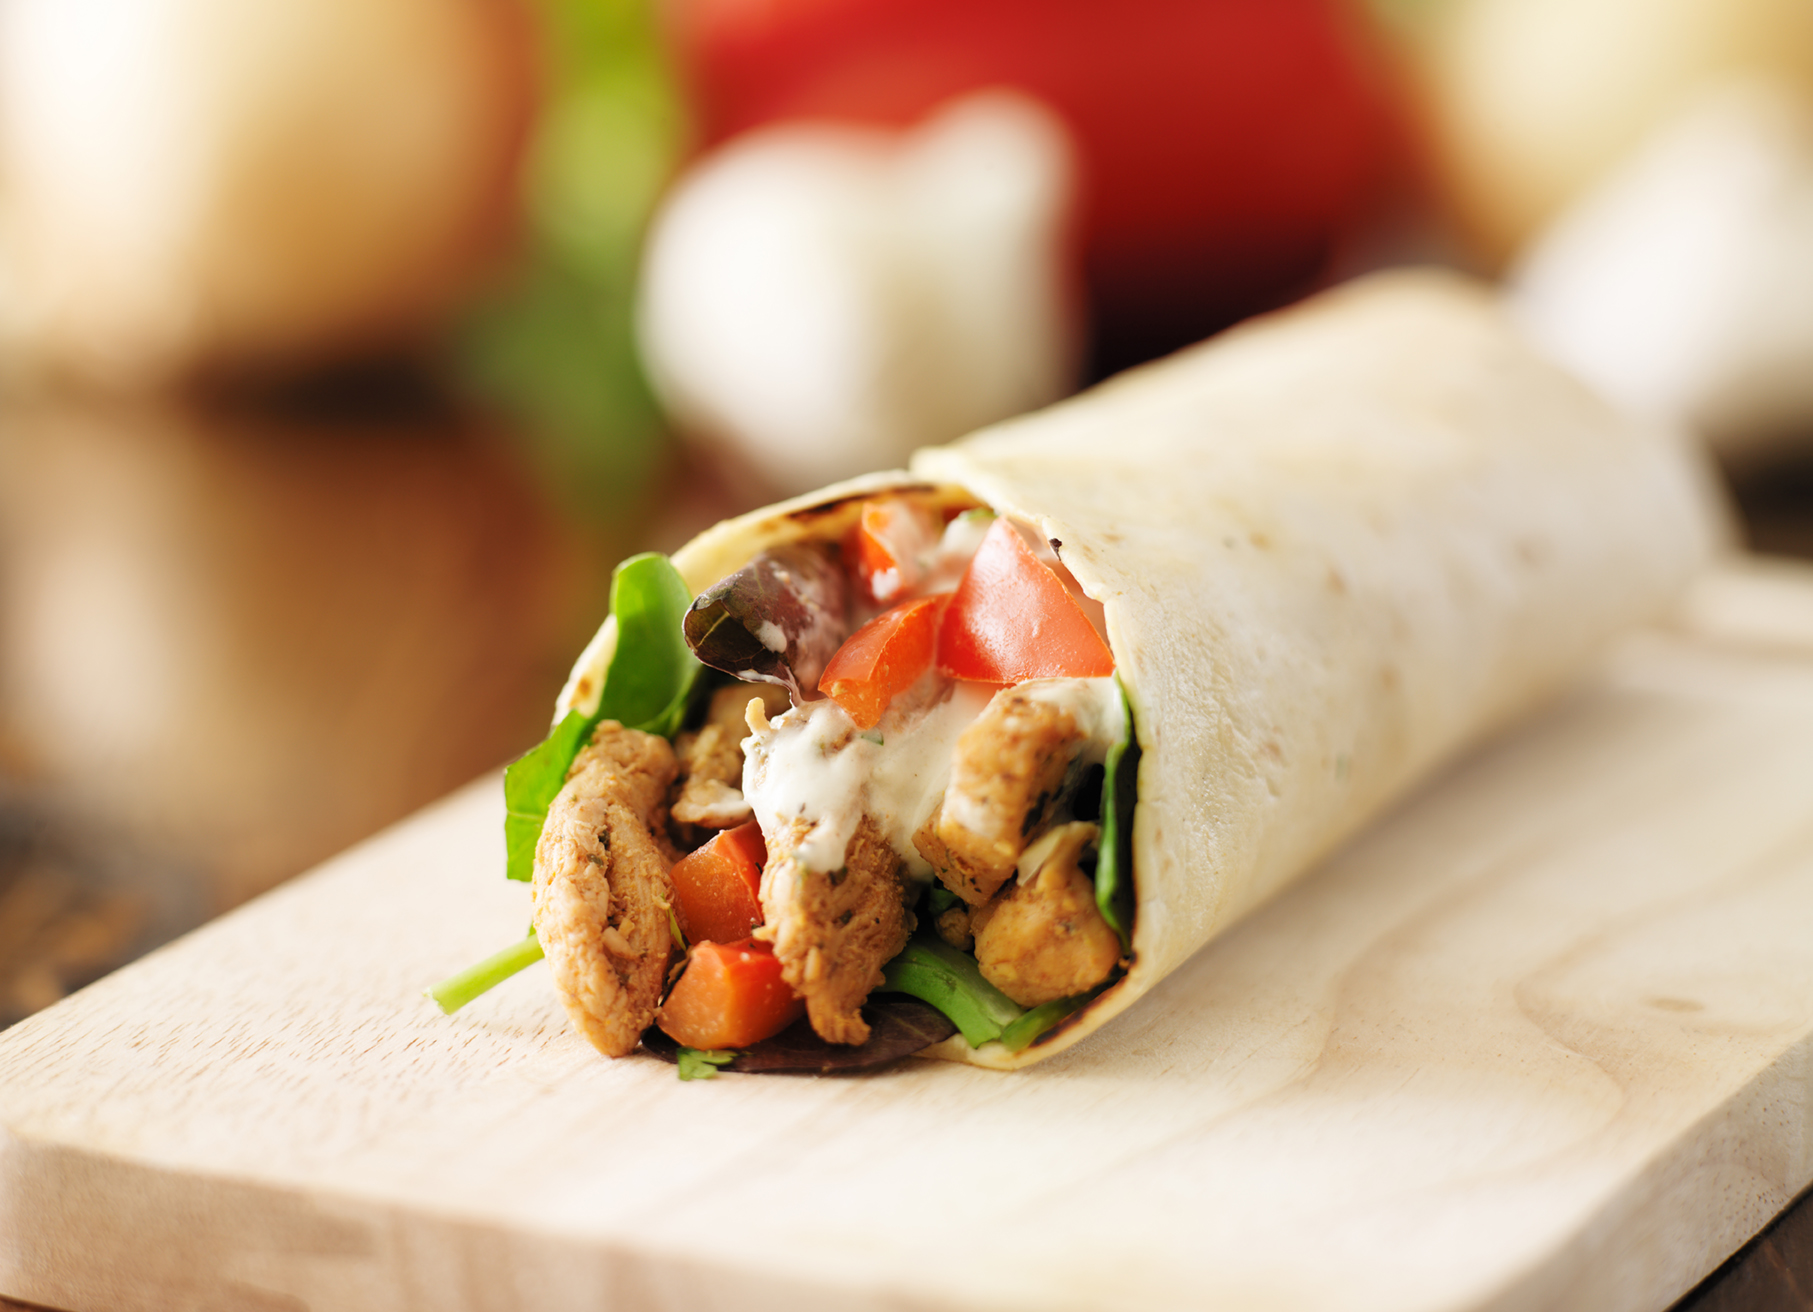 Chicken and Mozzarella Wrap